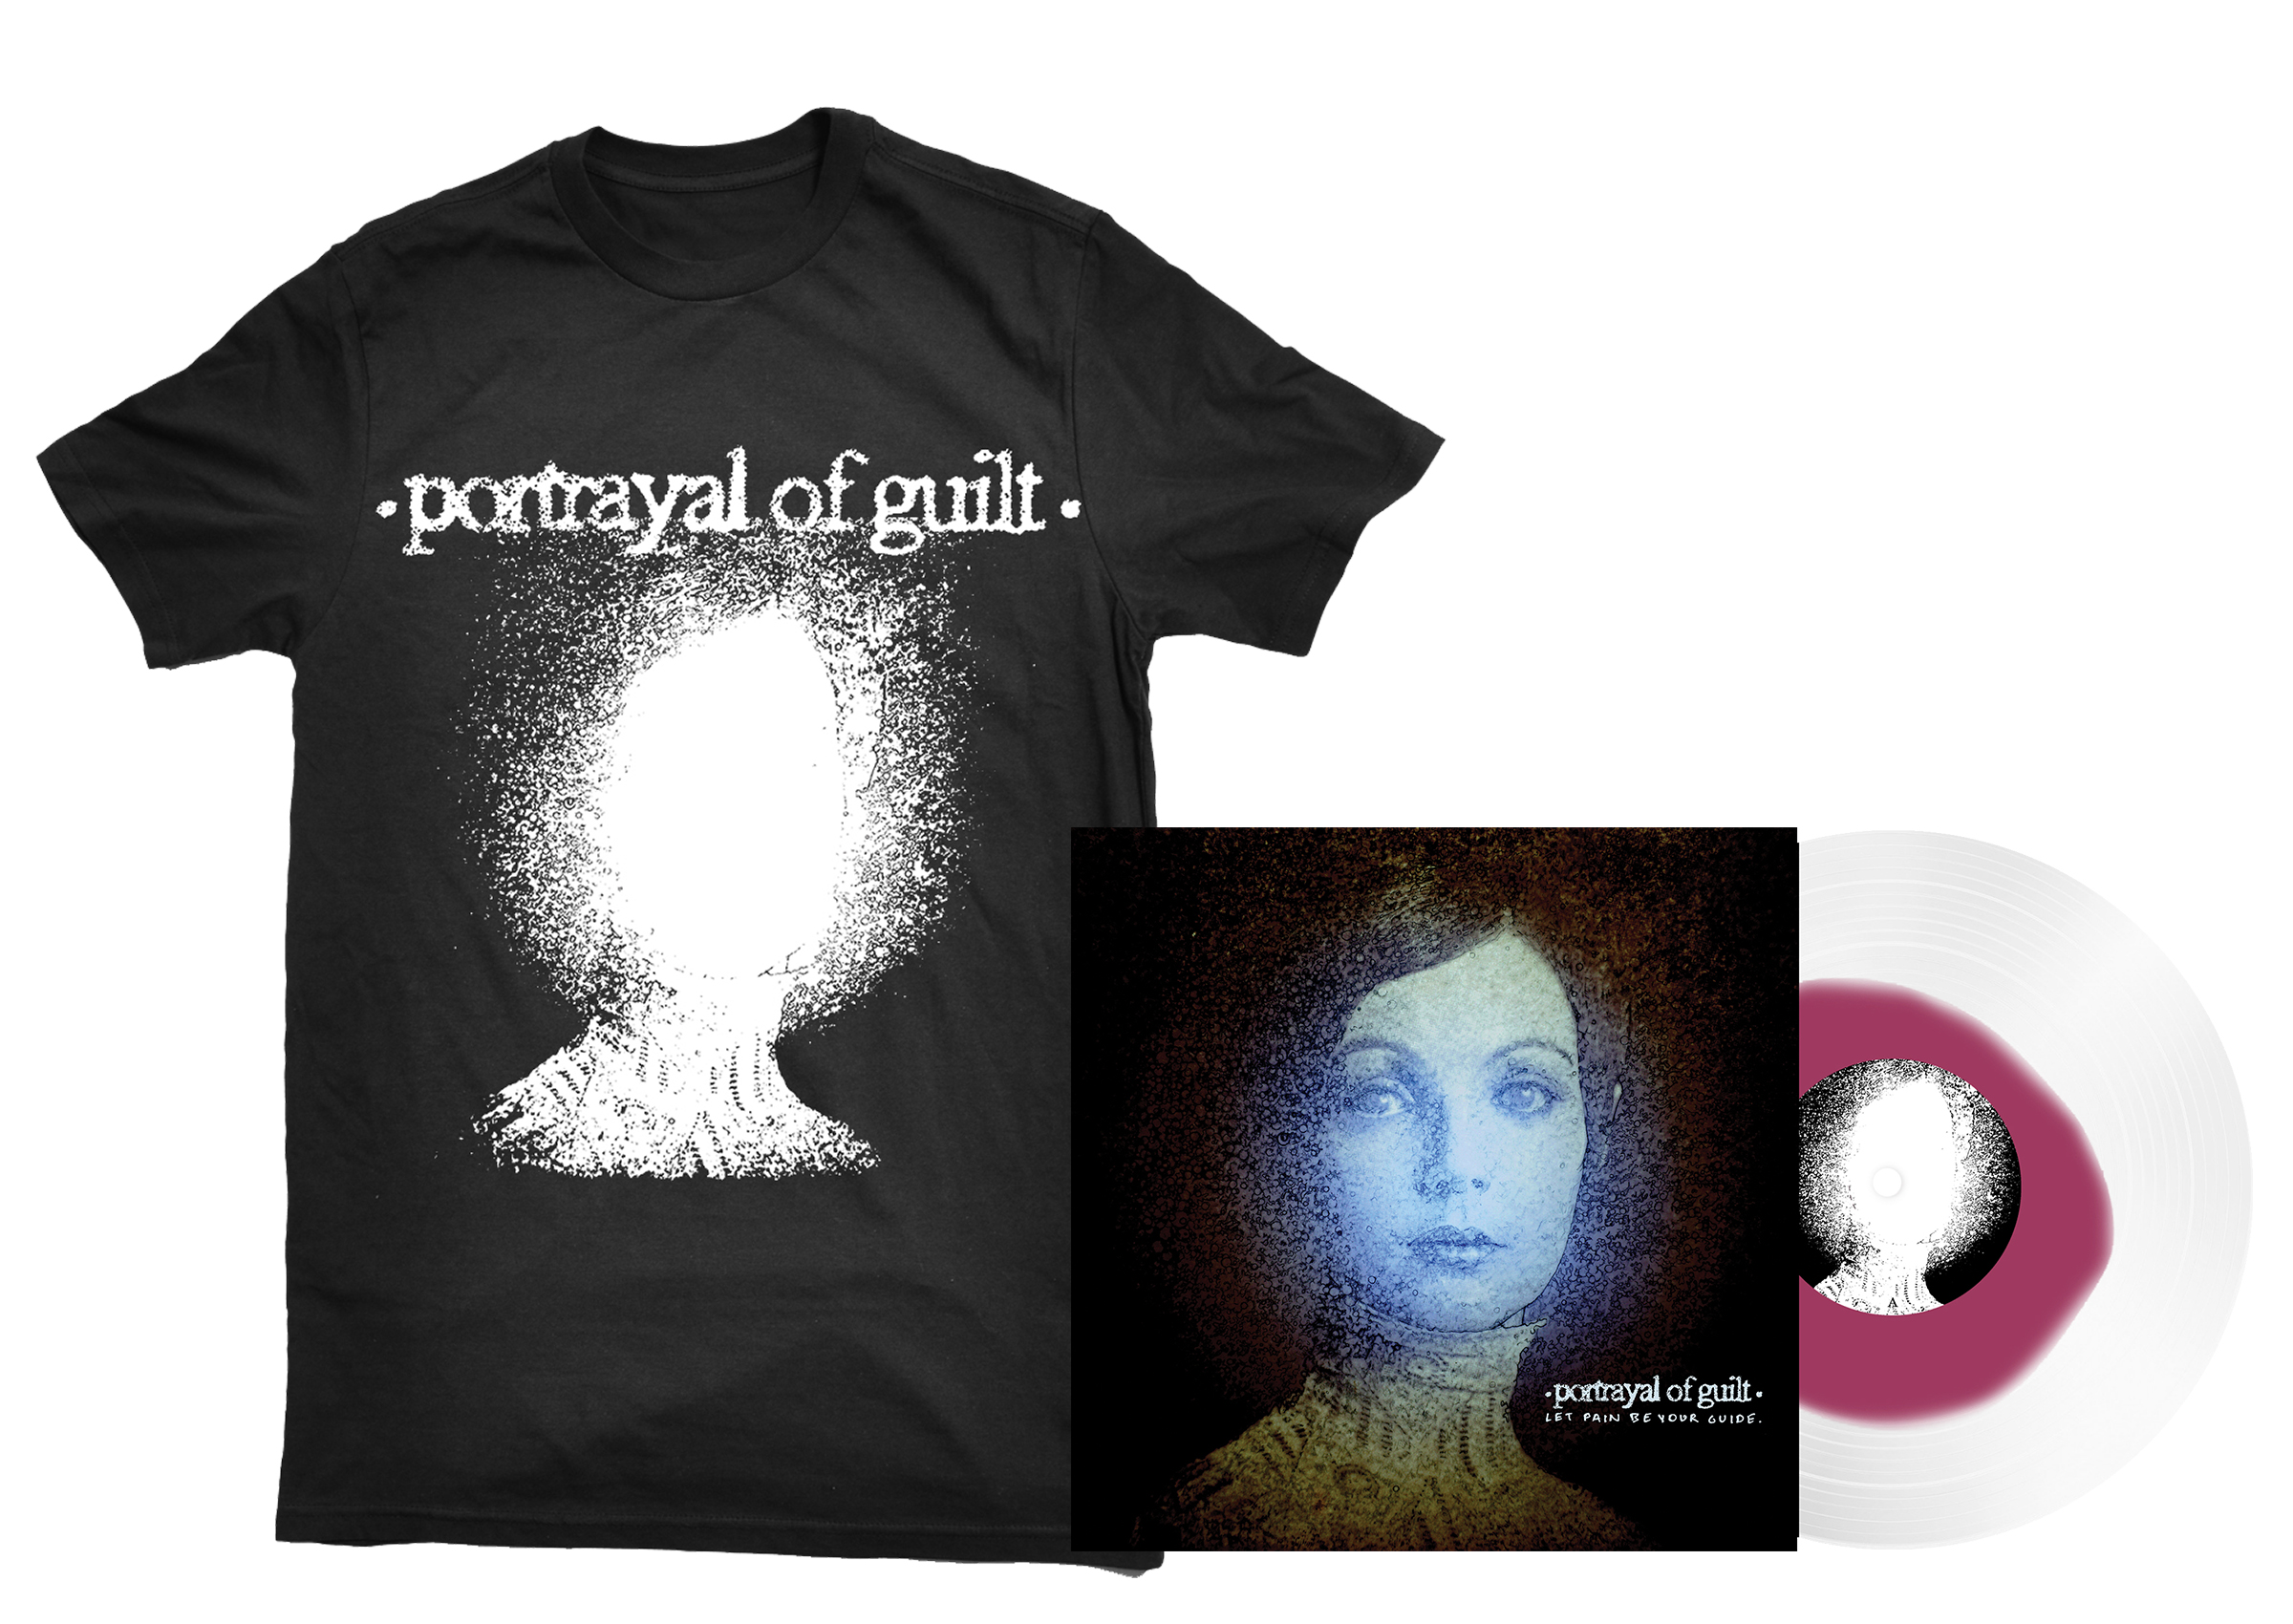 Portrayal of Guilt - 'Let Pain Be Your Guide' lightheaded shirt + LP